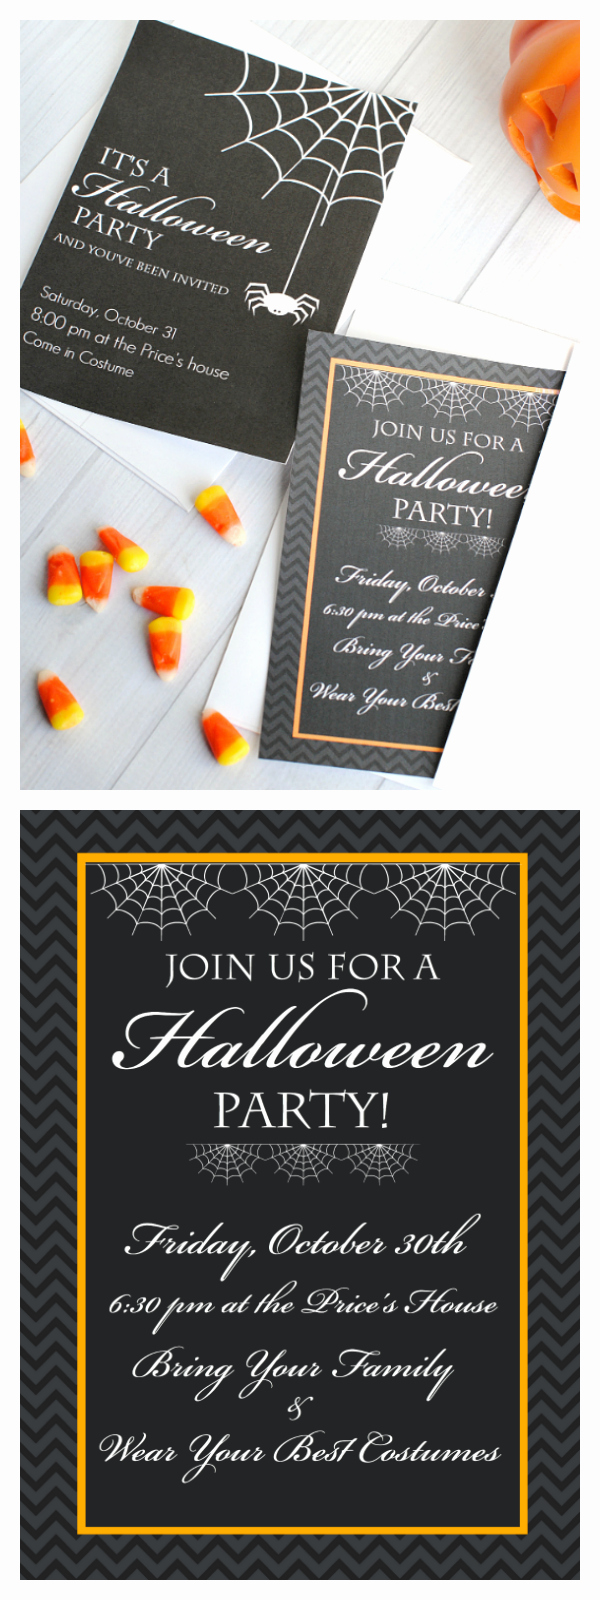 Free Halloween Invitation Printables Fresh Cute Free Printable Halloween Invitations – Fun Squared